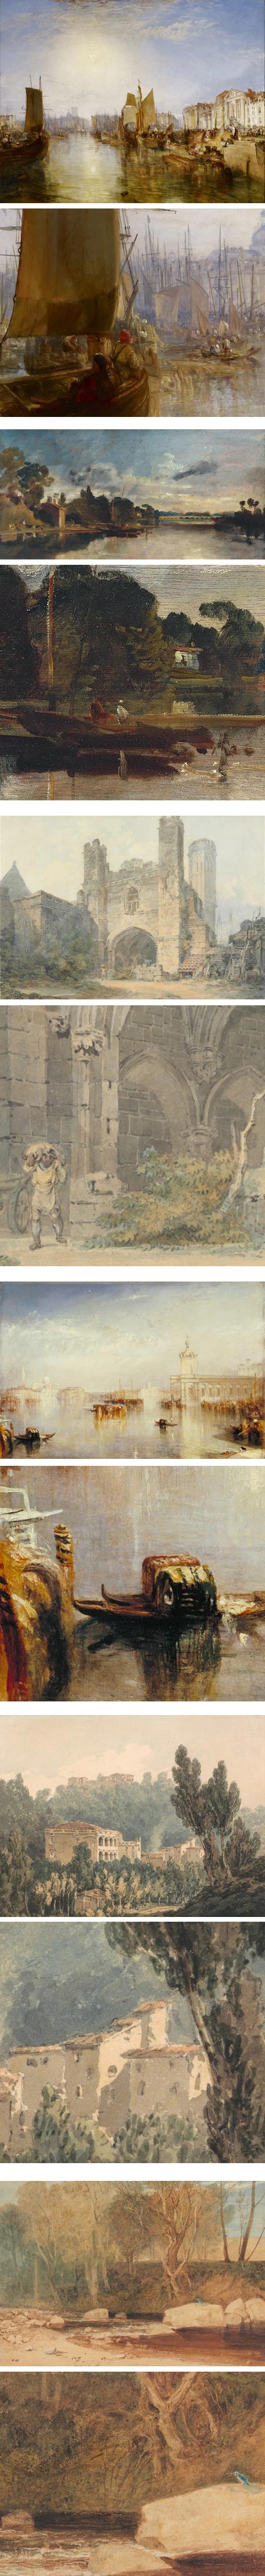 J.M.W. Turner on Google Art Project